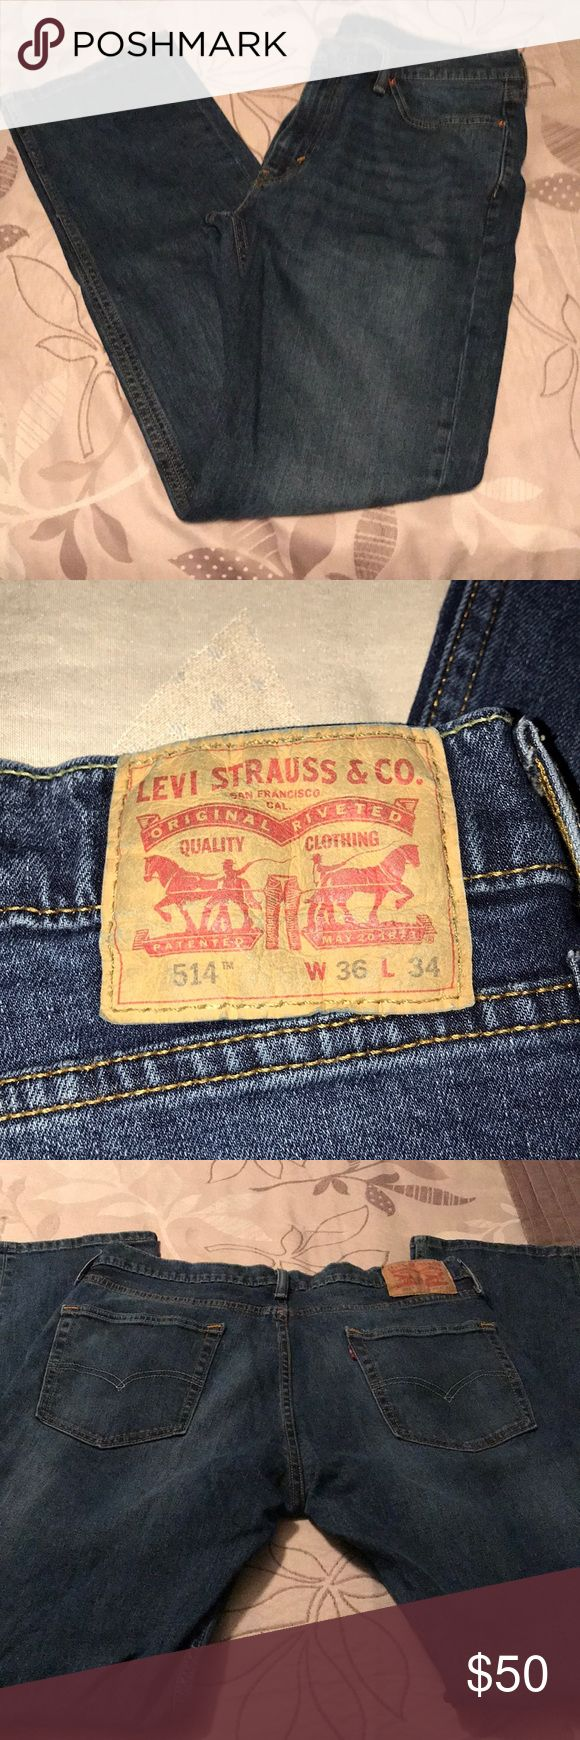 """Men's Levi's 514 Jeans 36/34 Like New Levi's 514 Jeans Straight Leg Zipper fly 36"""" waist 34"""" inseam These are like new.  No rips or stains. From my smoke free home. Levi's Jeans Straight"""